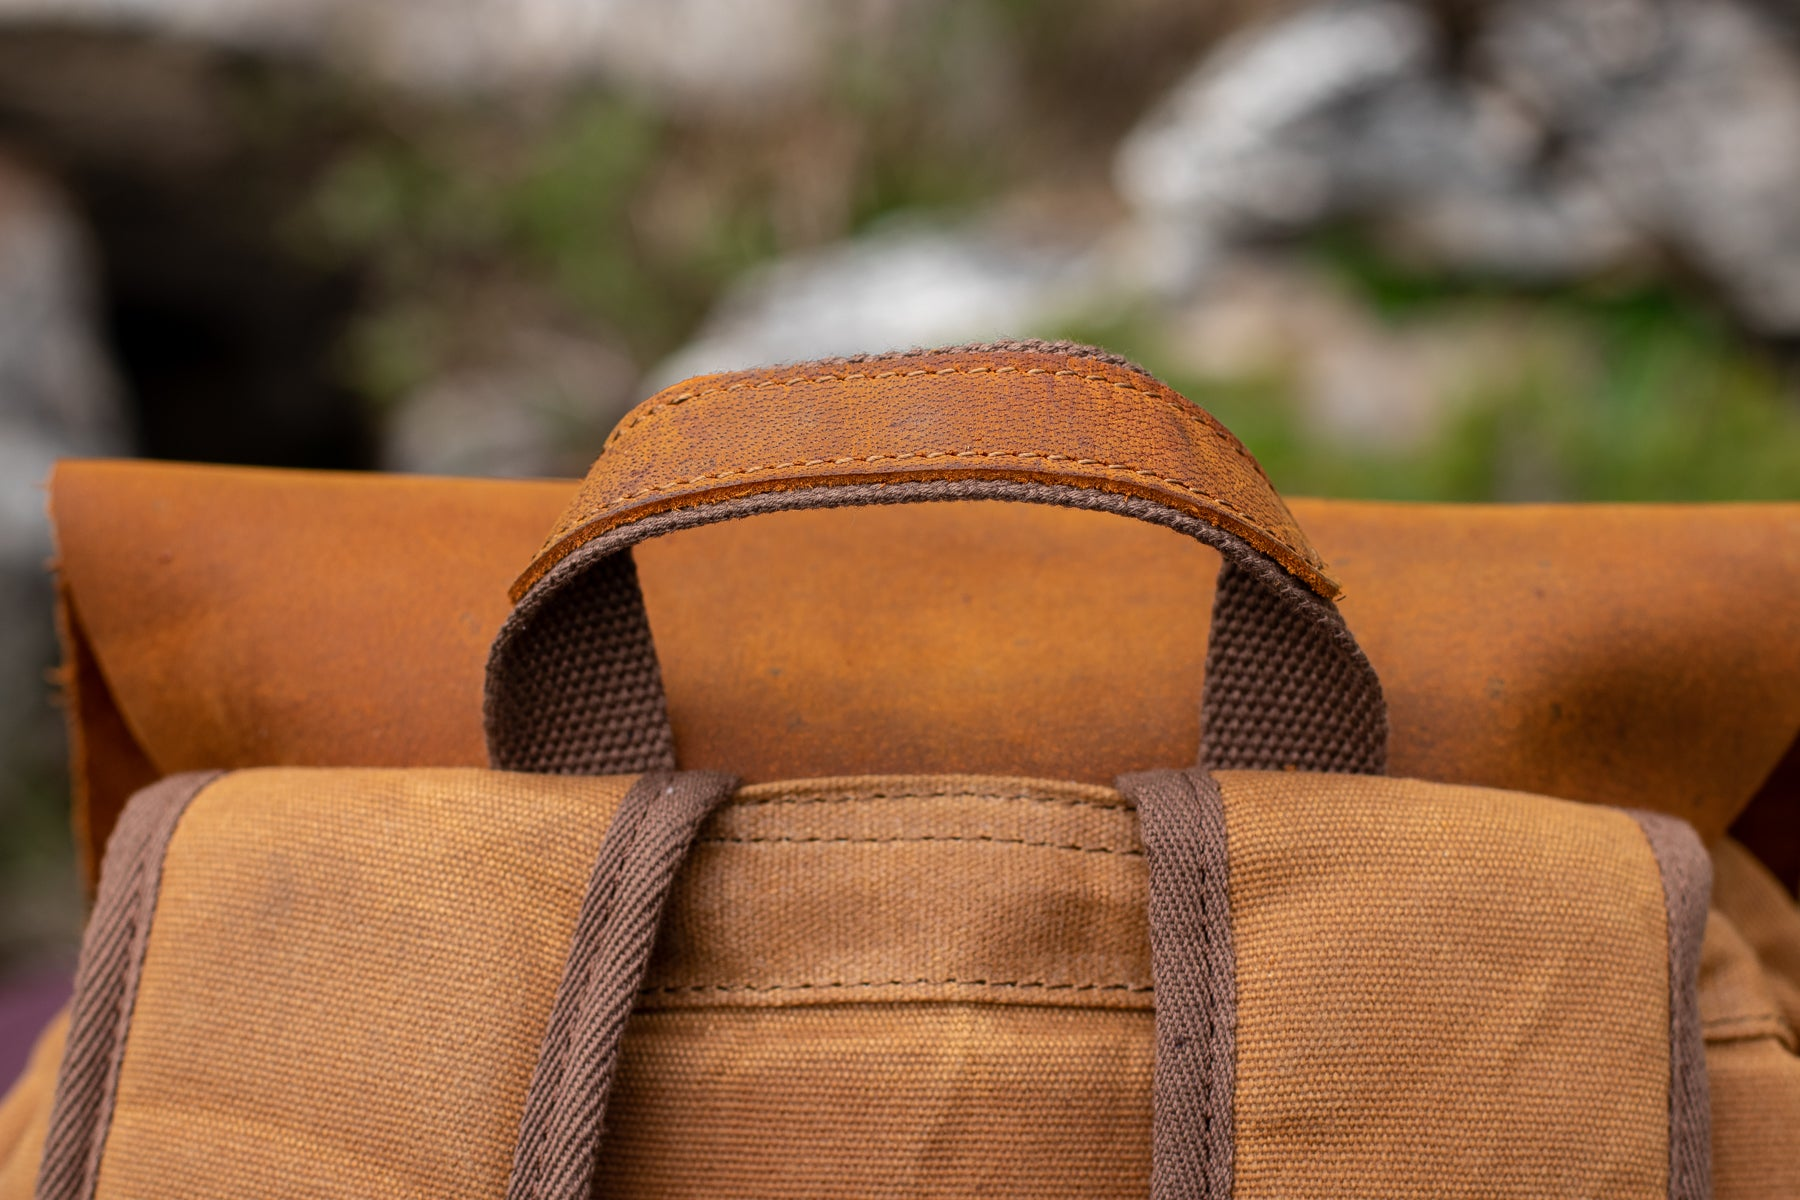 close up view of the leather cap and the top leather handle of the waxed bag